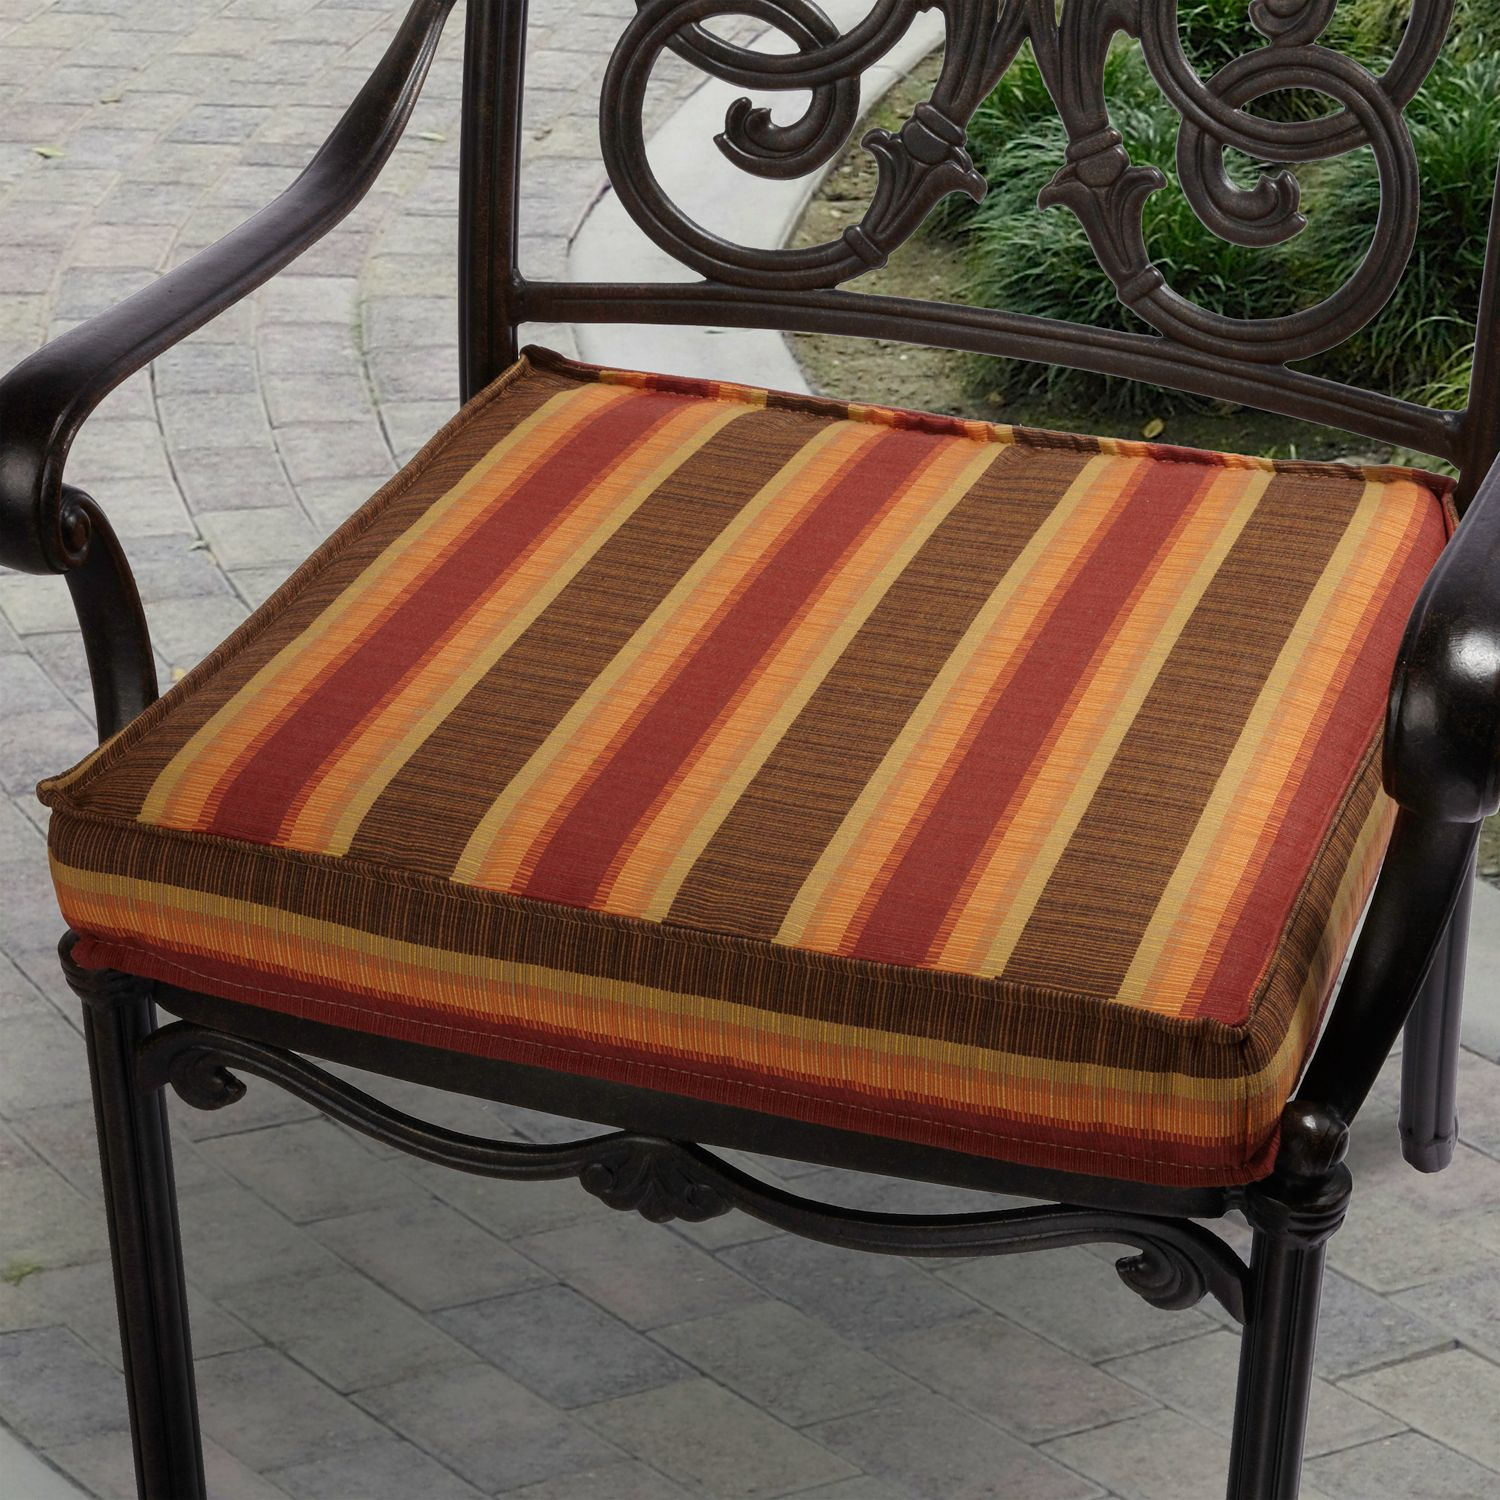 Attirant Red Striped Outdoor Chair Cushion